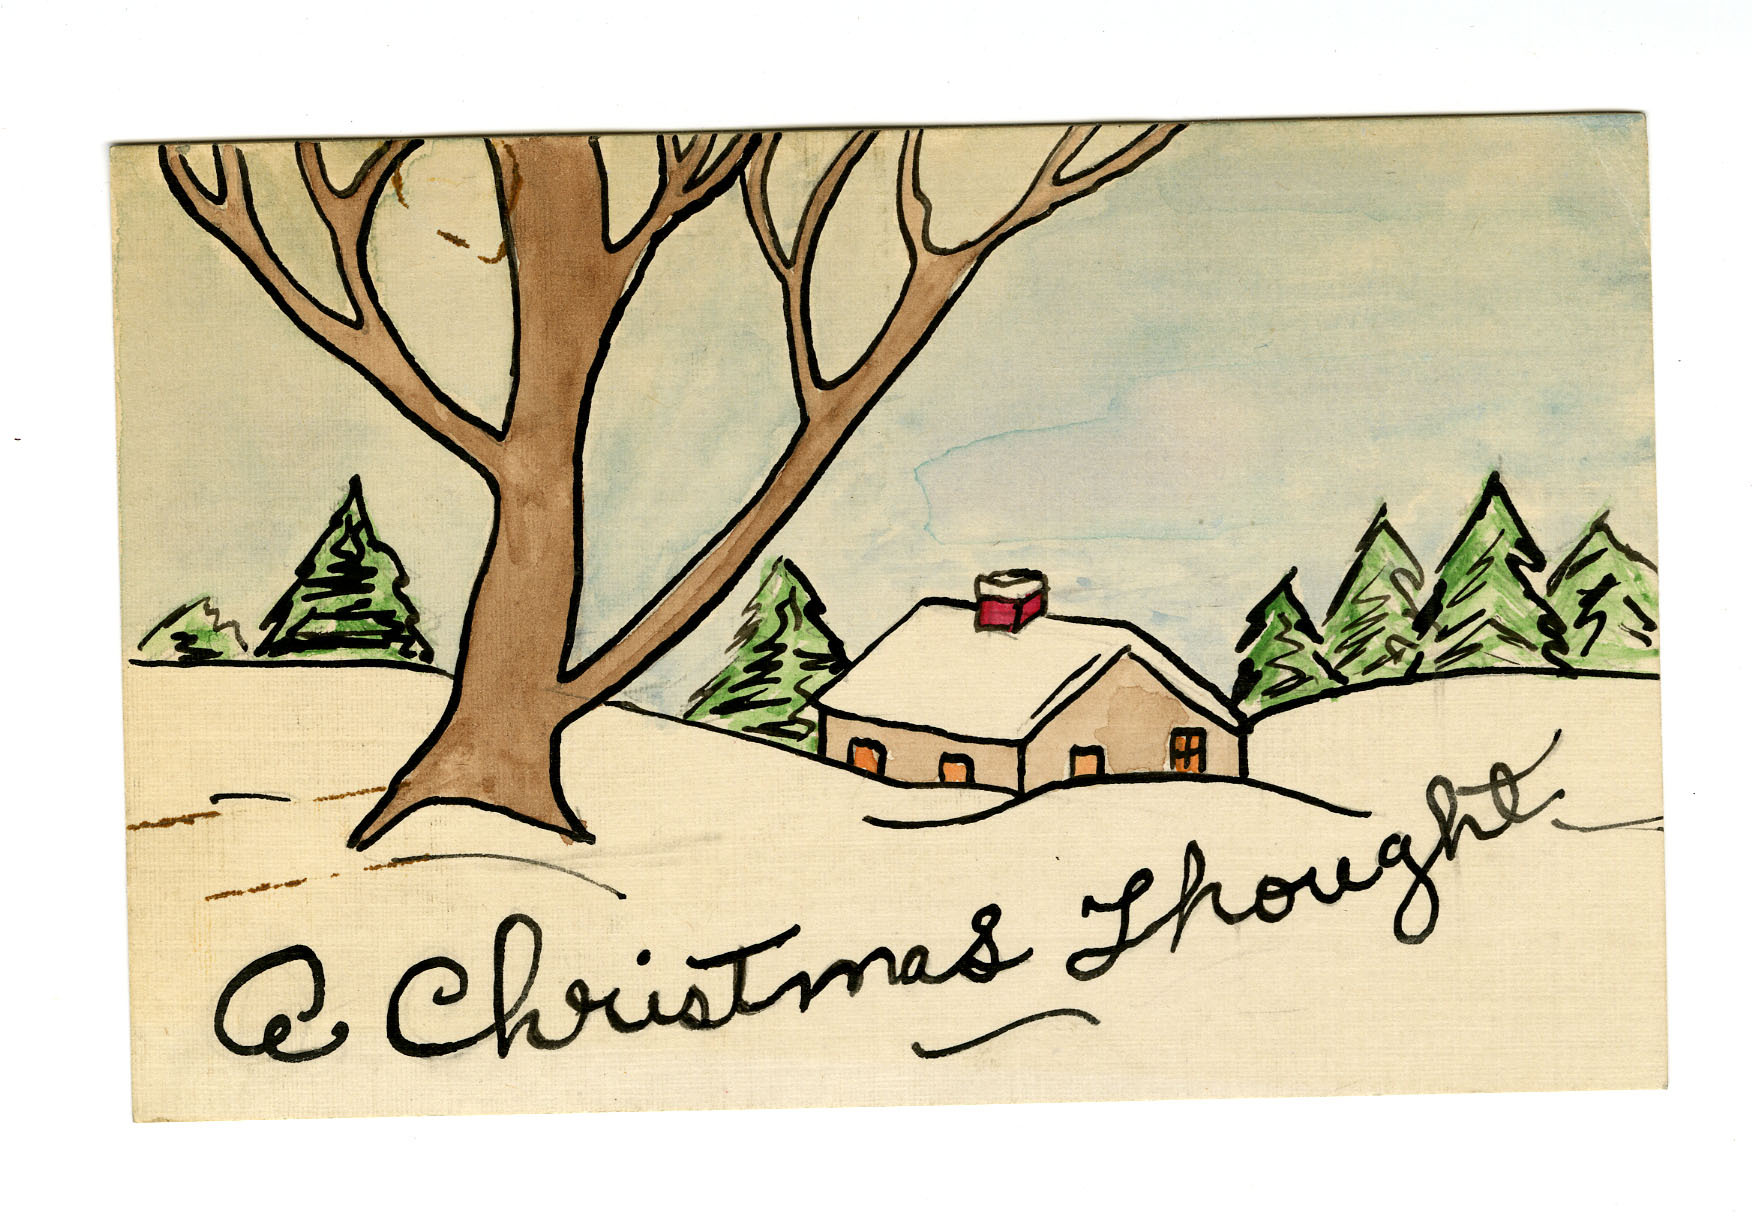 Ms1959_001_ChristmasCard_1931_p1.jpg